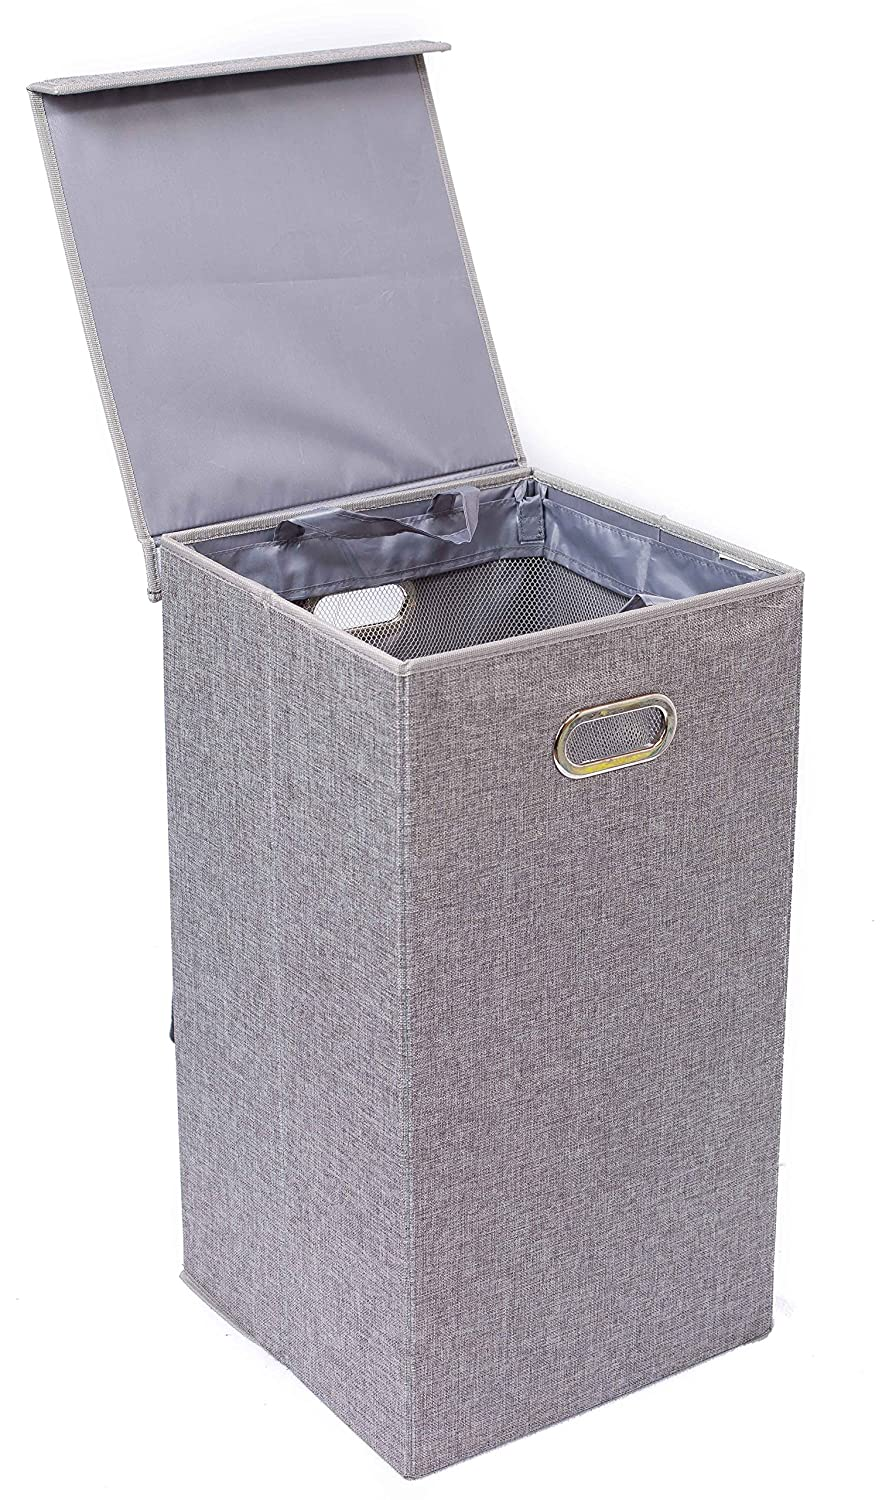 Amazon com   BirdRock Home Single Laundry Hamper with Lid and Removable  Liner   Linen   Easily Transport Laundry   Foldable Hamper   Cut Out  Handles   Baby. Amazon com   BirdRock Home Single Laundry Hamper with Lid and